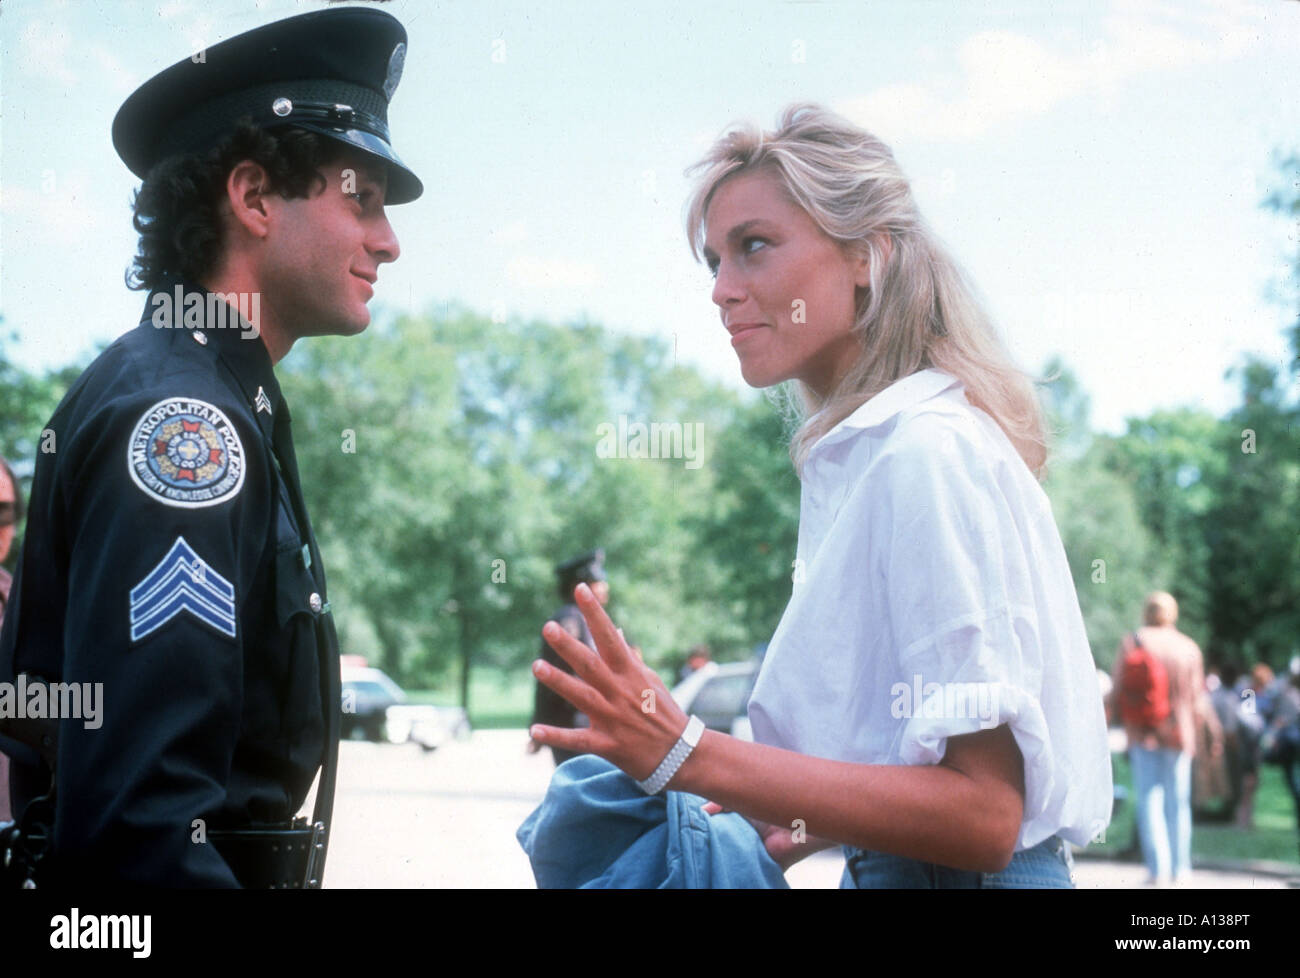 Police Academy 3 Back In Training Year 1986 Director Jerry Paris Steve Guttenberg